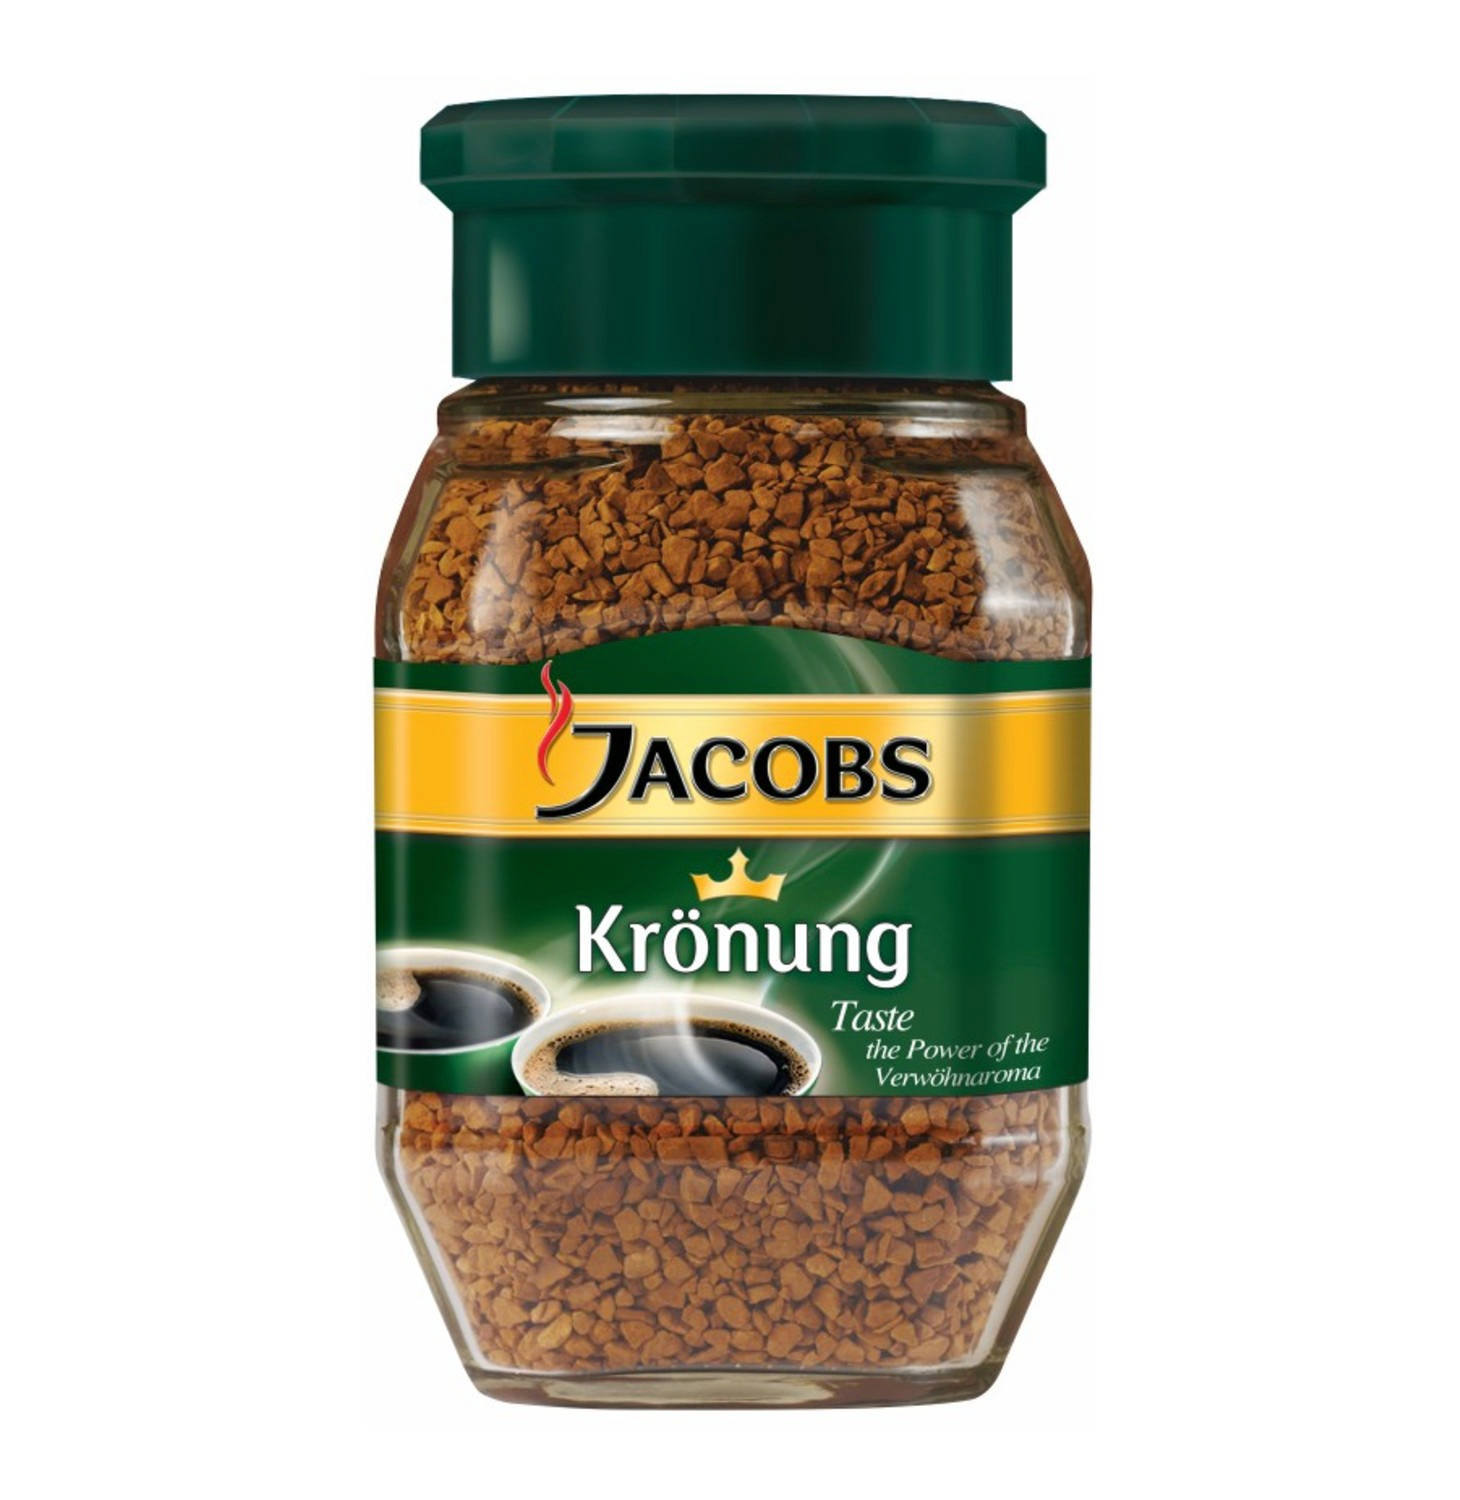 Coffee Inst Kronung Jacobs 200G Jar